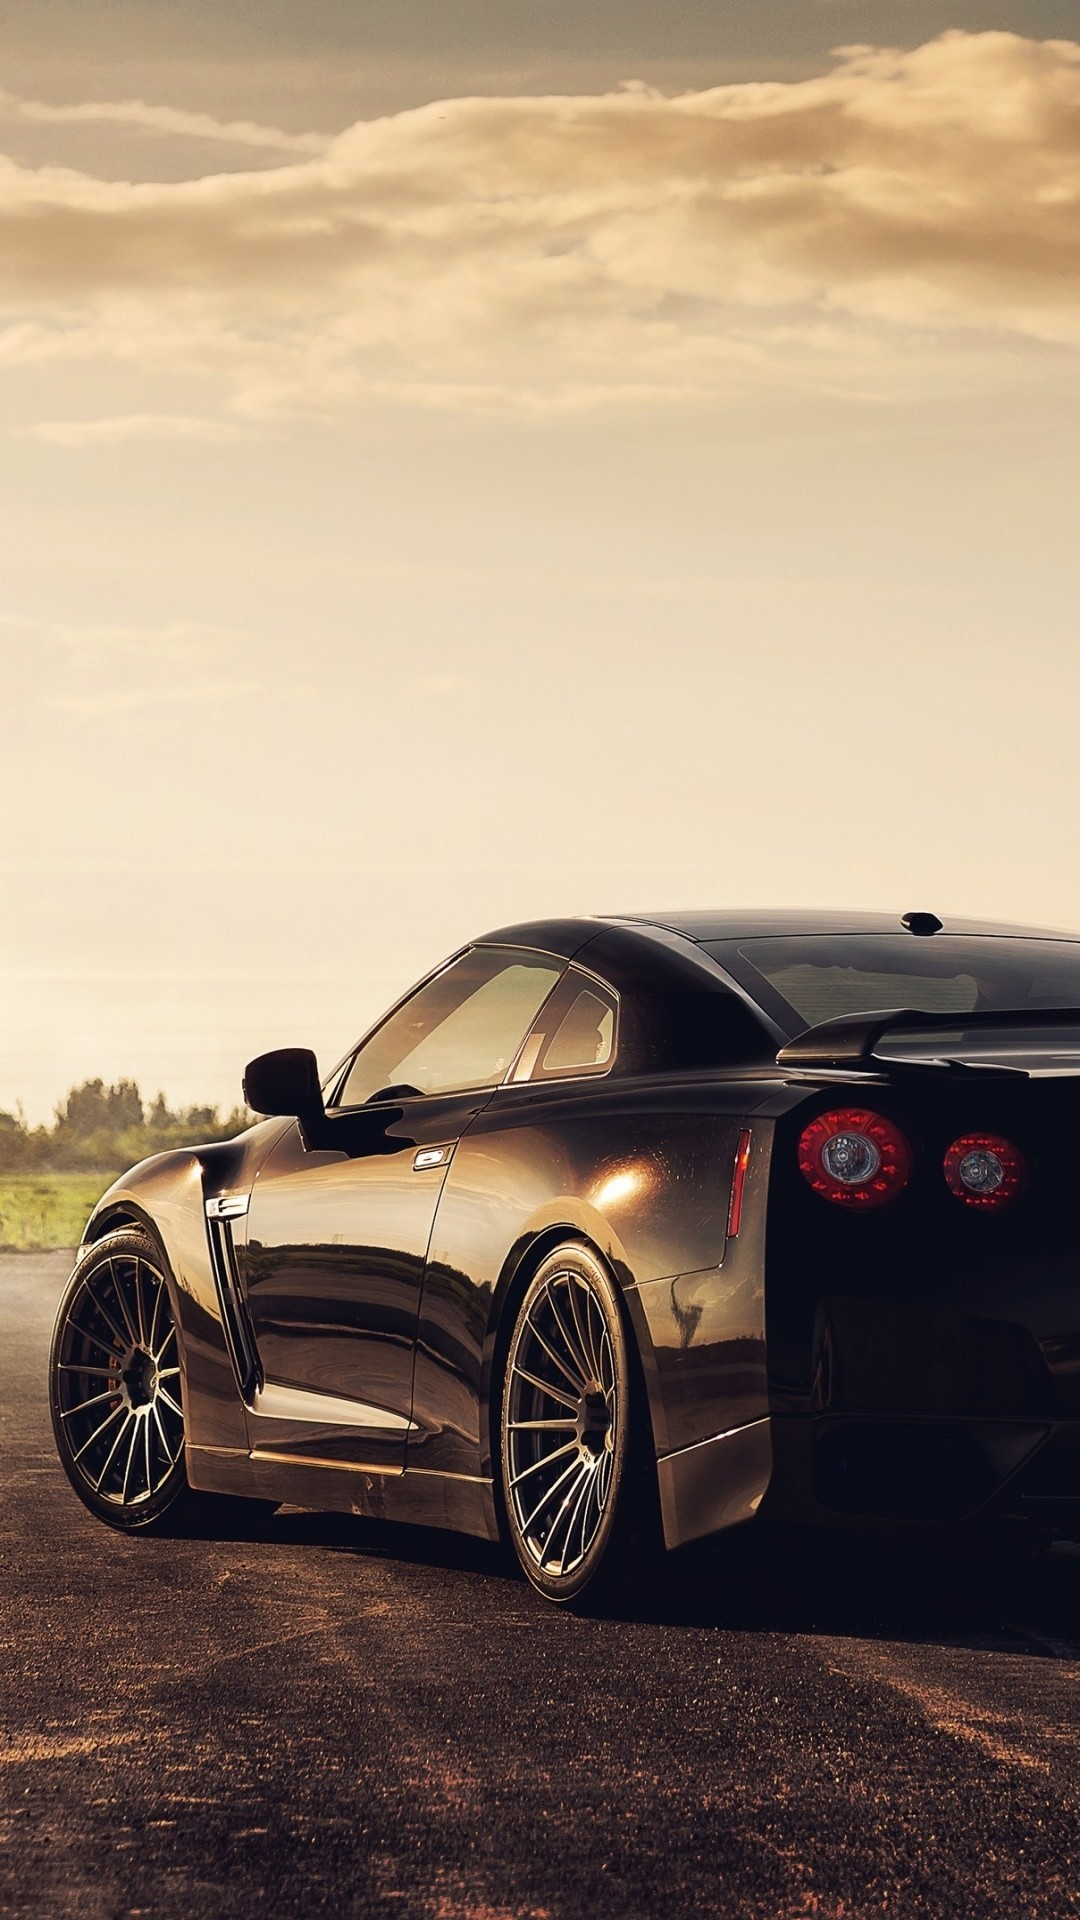 Res: 1080x1920, Nissan Gtr Nismo Wallpaper Iphone 2e Auto J Gt R 116 16u Awesome .